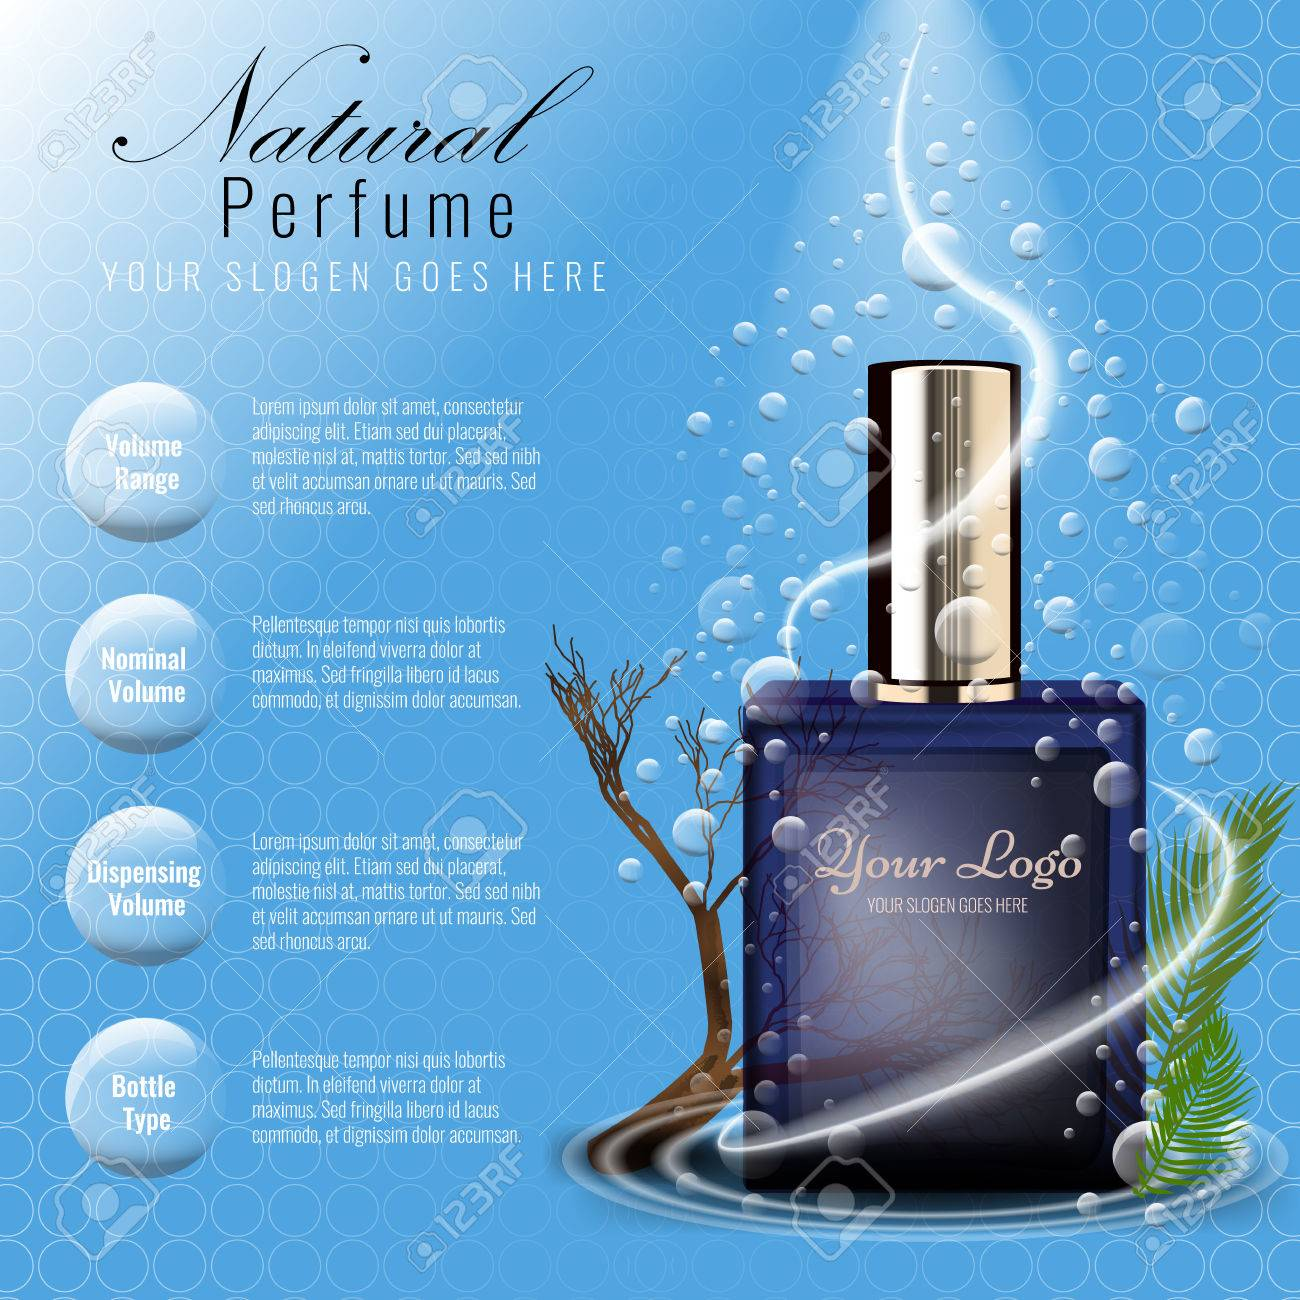 perfume ads template glass bottle mockup for ads or magazine